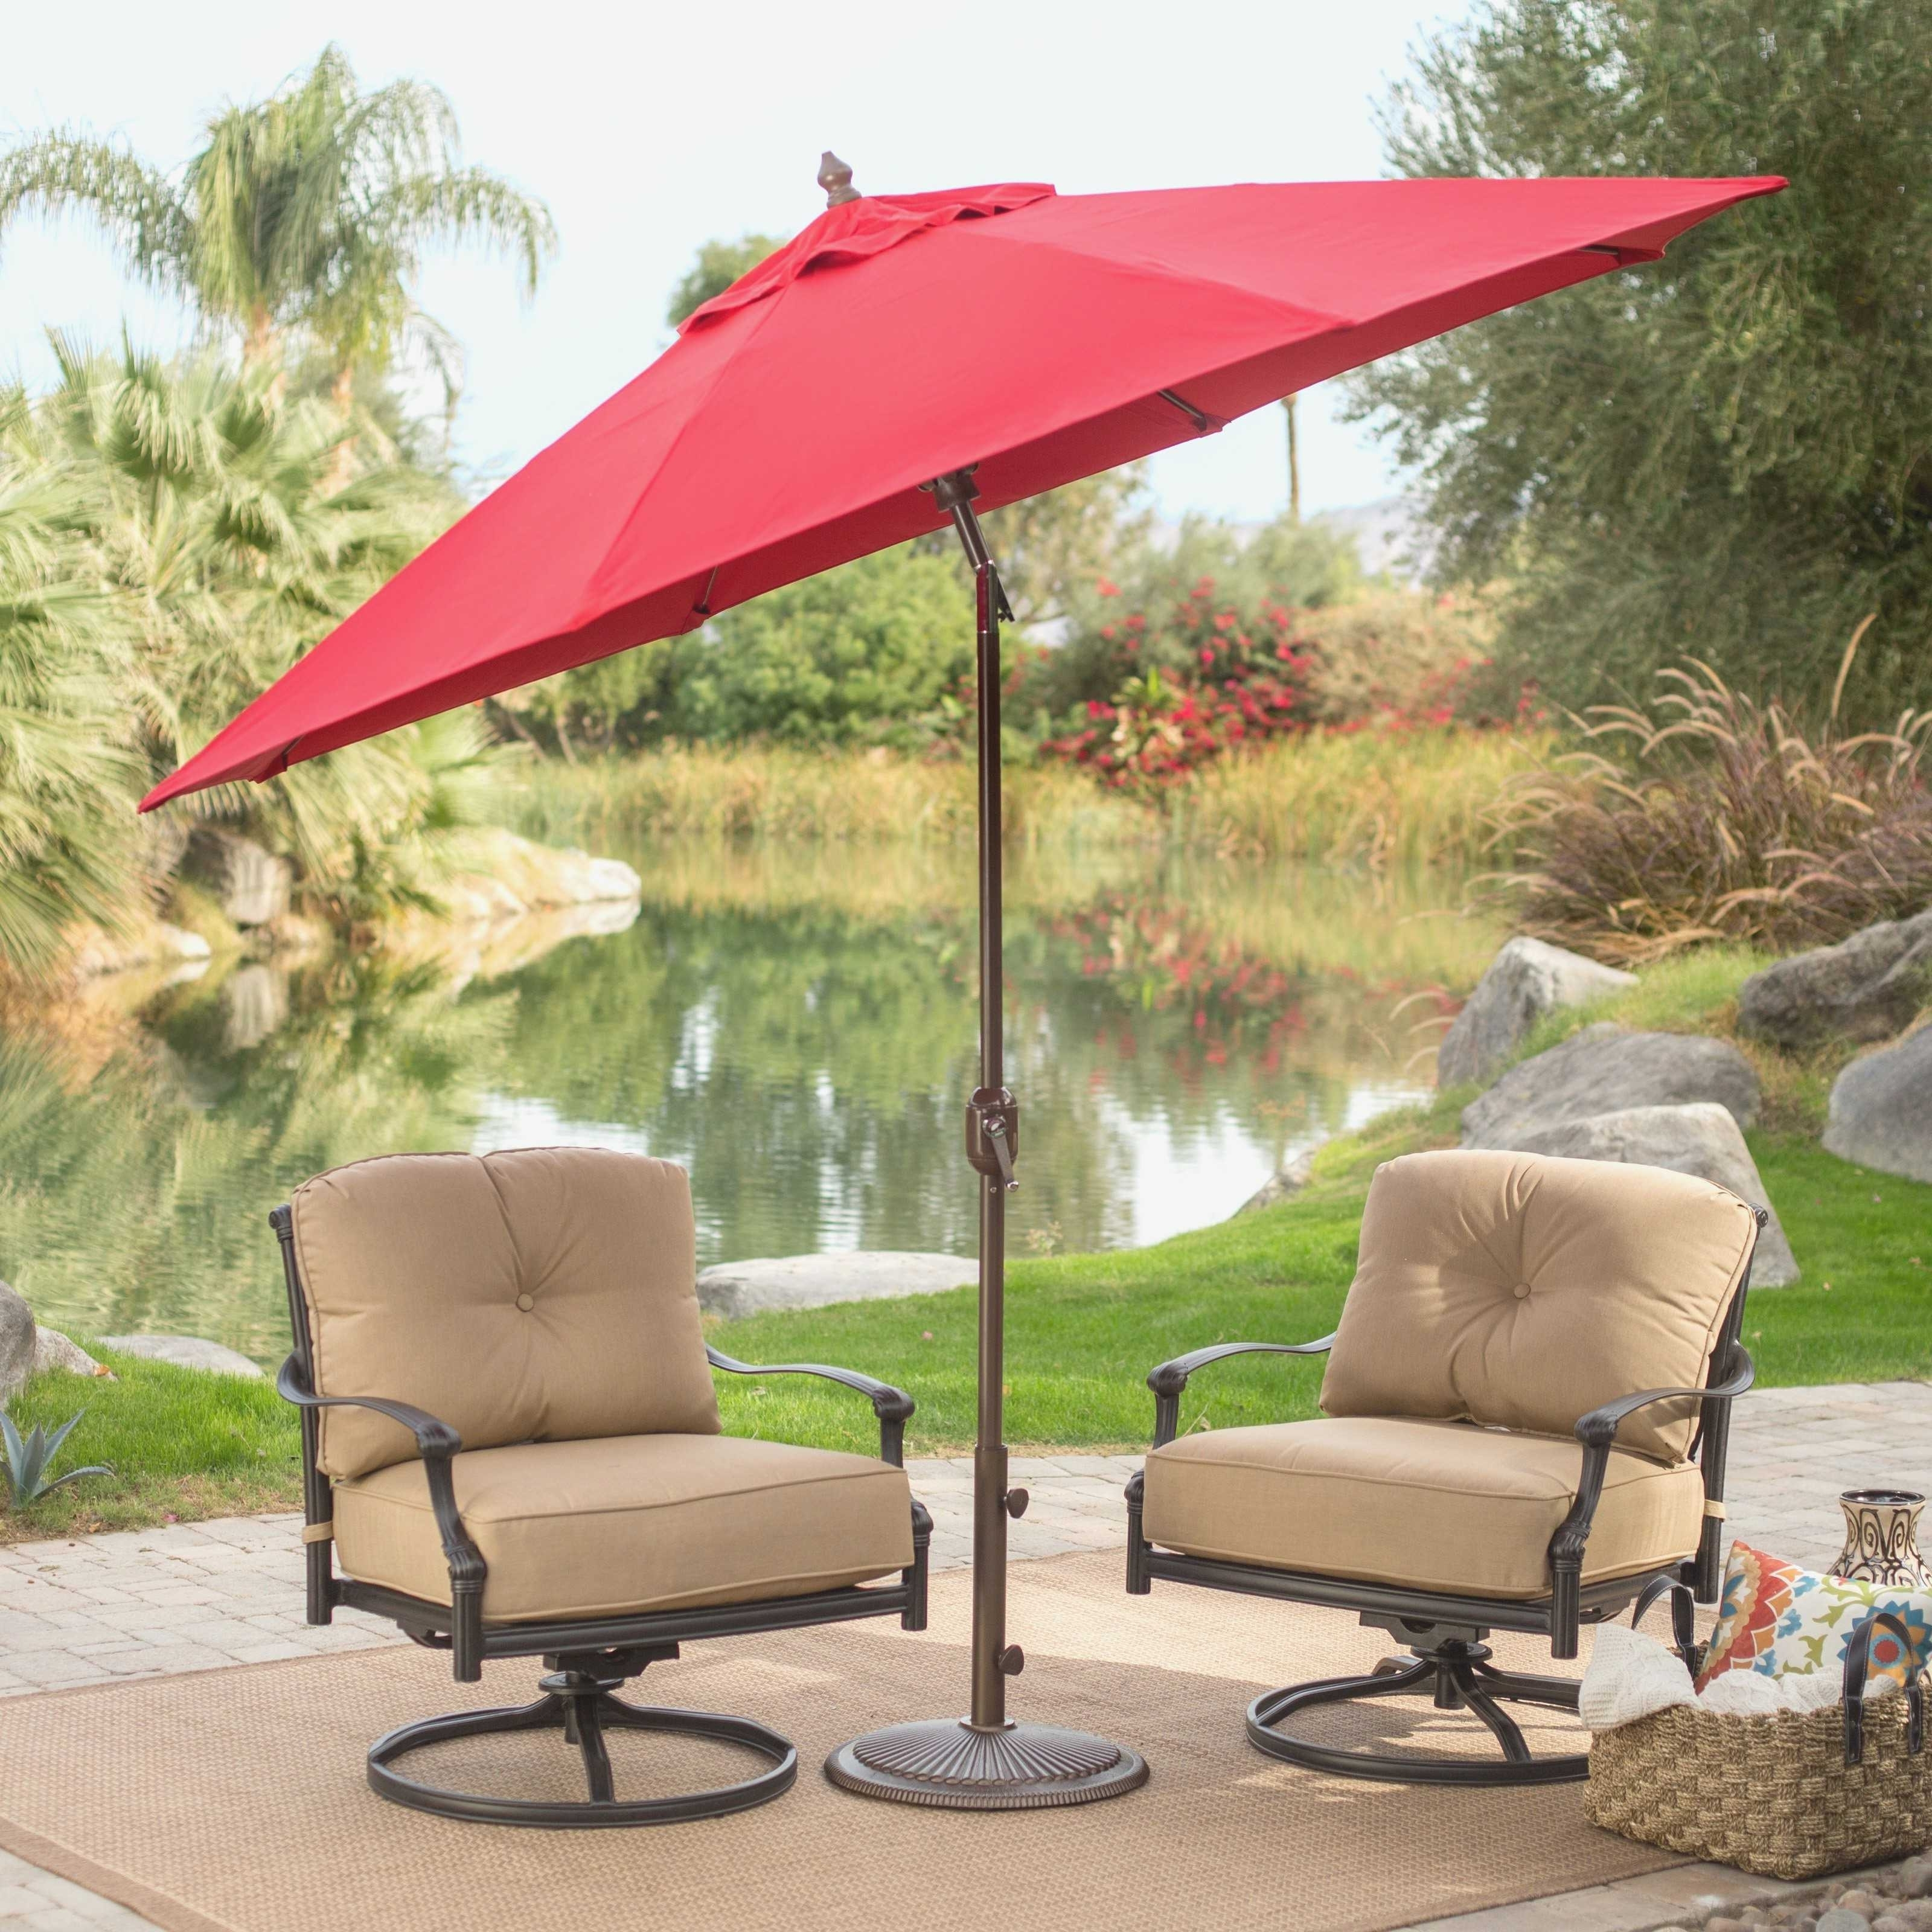 44 Patio Umbrella With Fringe Hm5K – Mcnamaralaw Throughout 2018 Vintage Patio Umbrellas For Sale (Gallery 9 of 20)